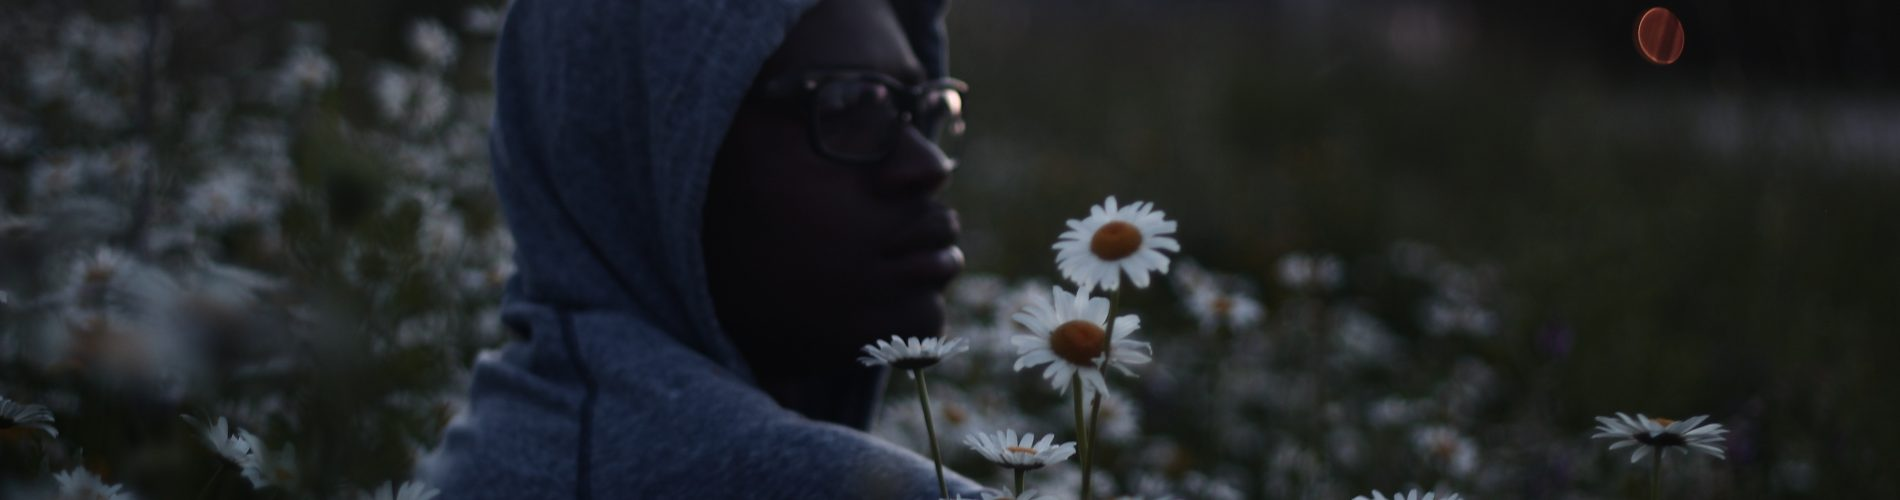 Caring Masculinity, Flower Man, wellington sanipe unsplash